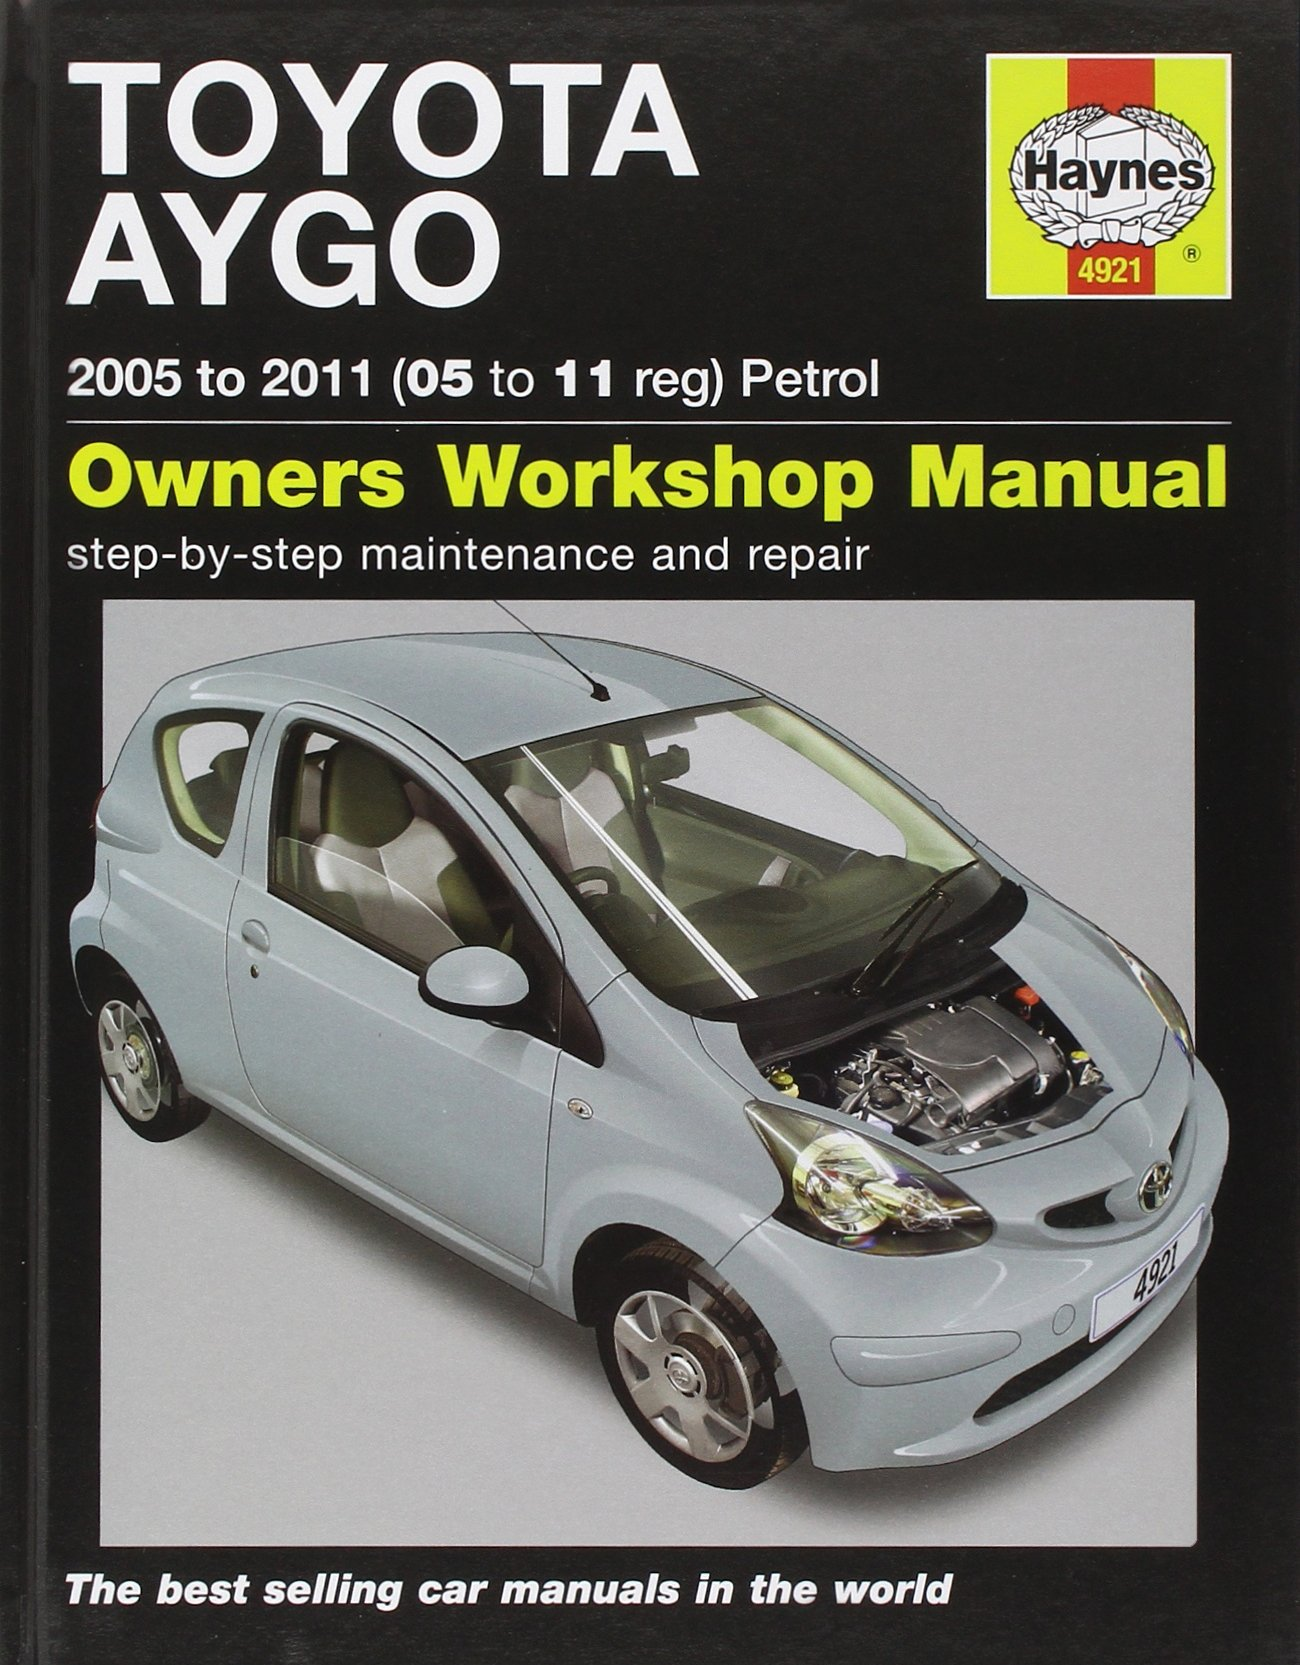 Toyota Aygo Petrol: 2005 to 2011 (Service & repair manuals): Amazon.co.uk:  Peter T. Gill: 9781844259212: Books